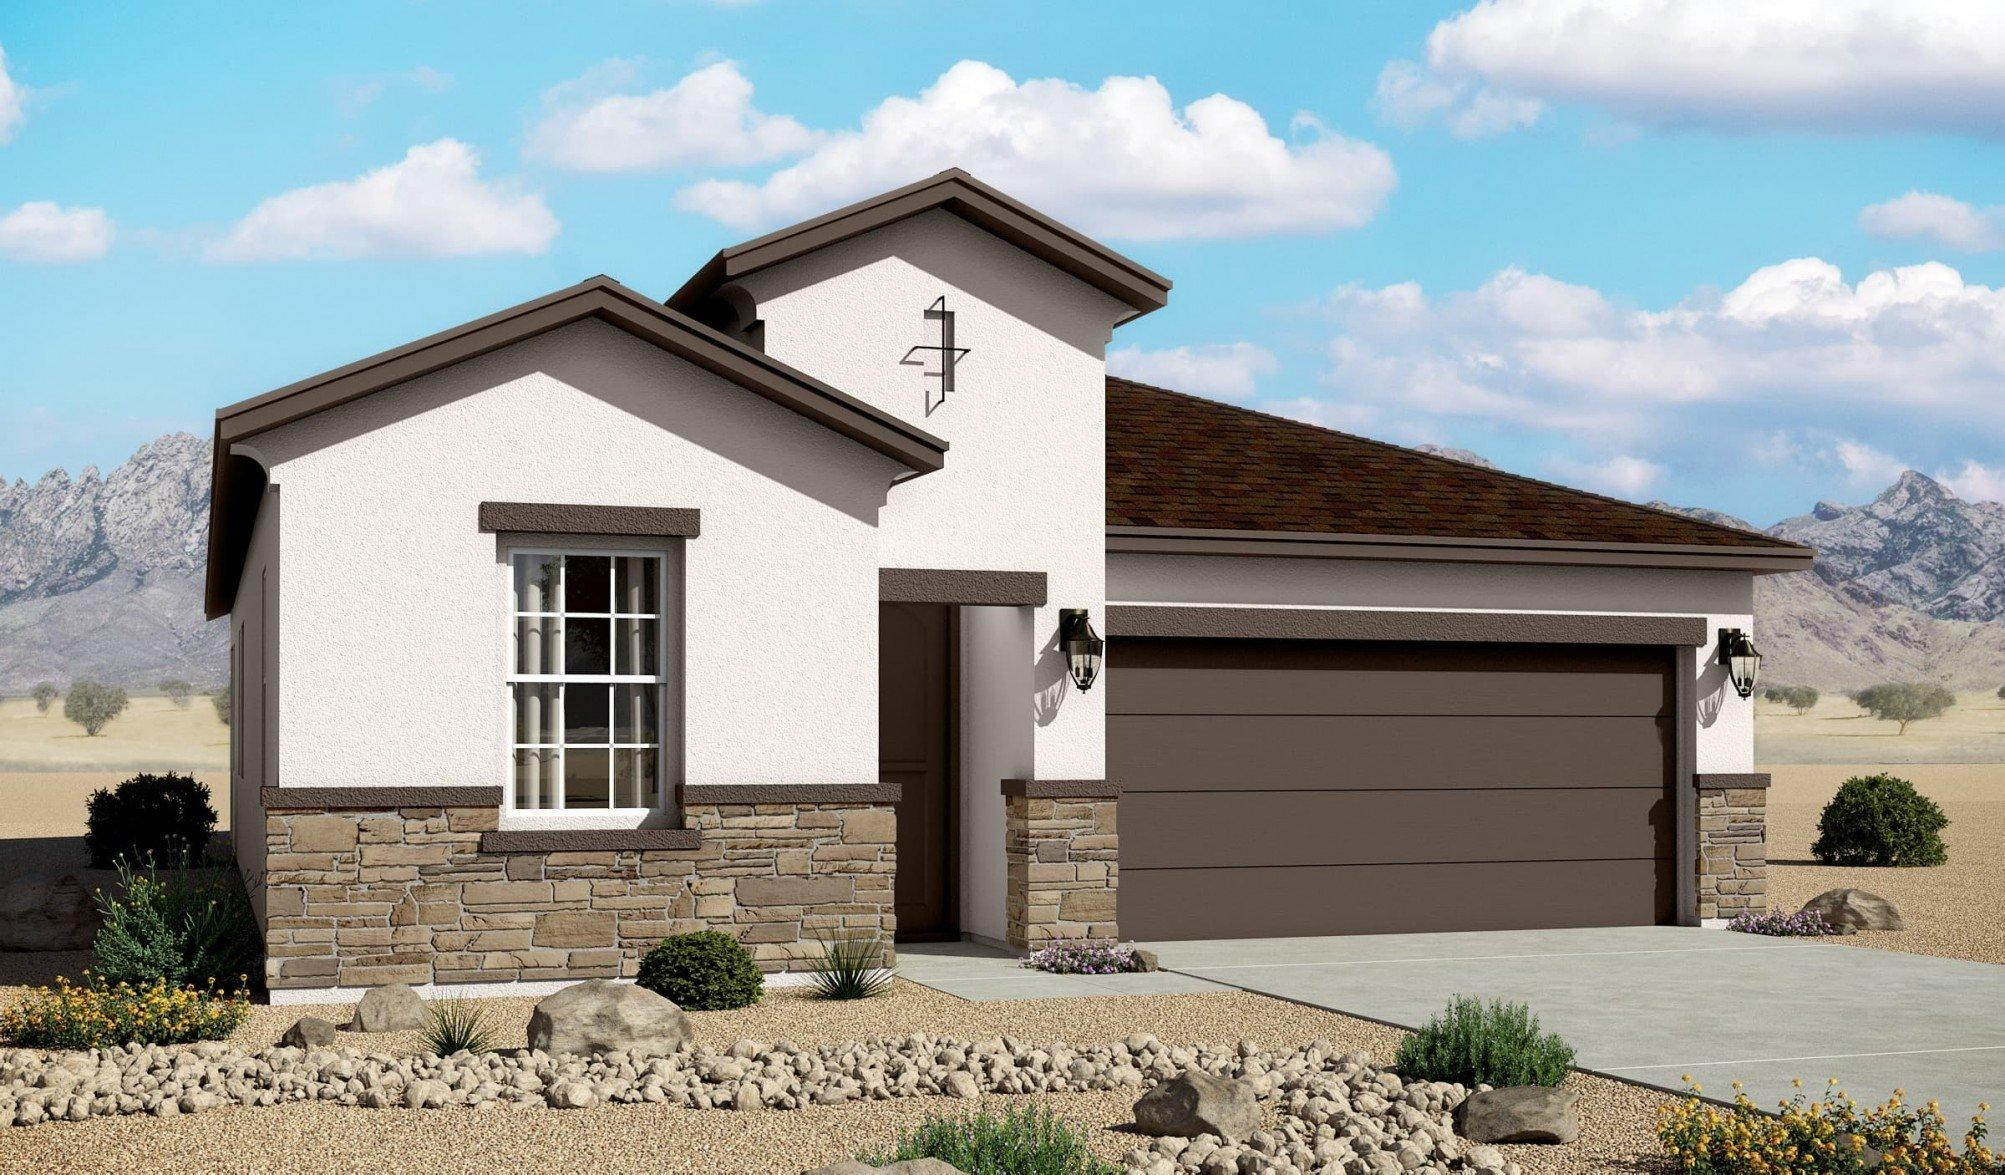 Estimated completion January 2021..Beautiful Hakes Brothers brand new home in Valle Prado that features 1752 Sq Ft with amazing Gourmet kitchen with granite/quartz stone countertops. Huge 8 ft doors and wide open inviting spaces.